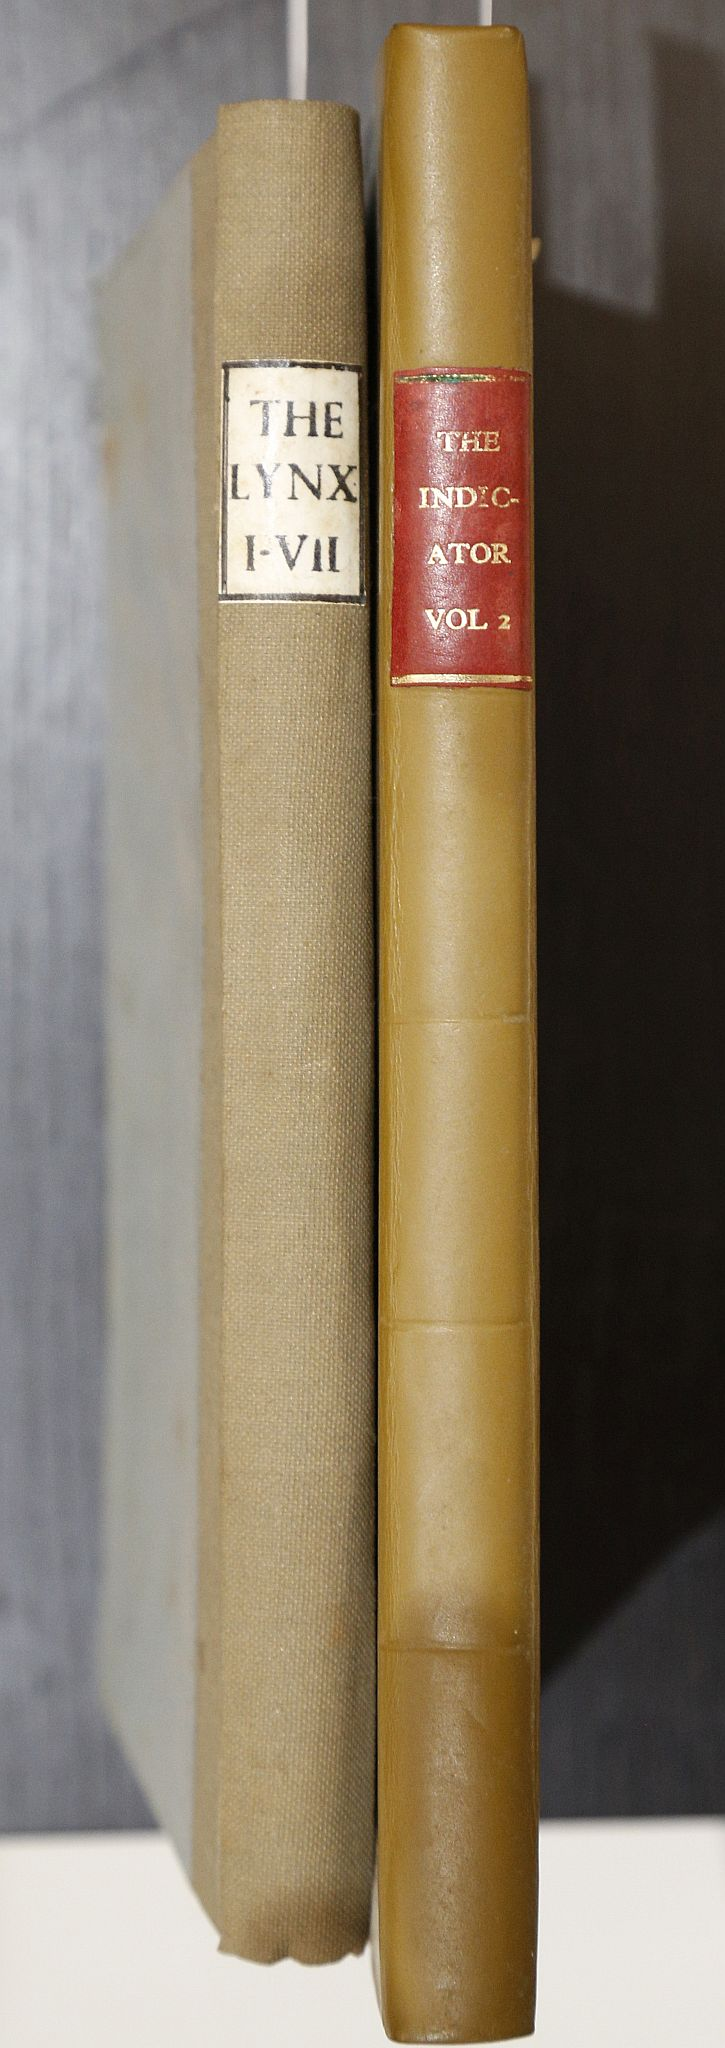 The Lynx No. 1 - No. 5, No. 7. London: H. D. Symonds, [n.d]. 8vo. (No. 6 supplied in facsimile, light browning.) Later blue and olive quarter cloth (new endpapers, covers lightly soiled). With [Leigh Hunt]'s The Indicator. London: Joseph Appleyard, [n.d]. 8vo. (Light browning). Later quarter calf (worn). (2)